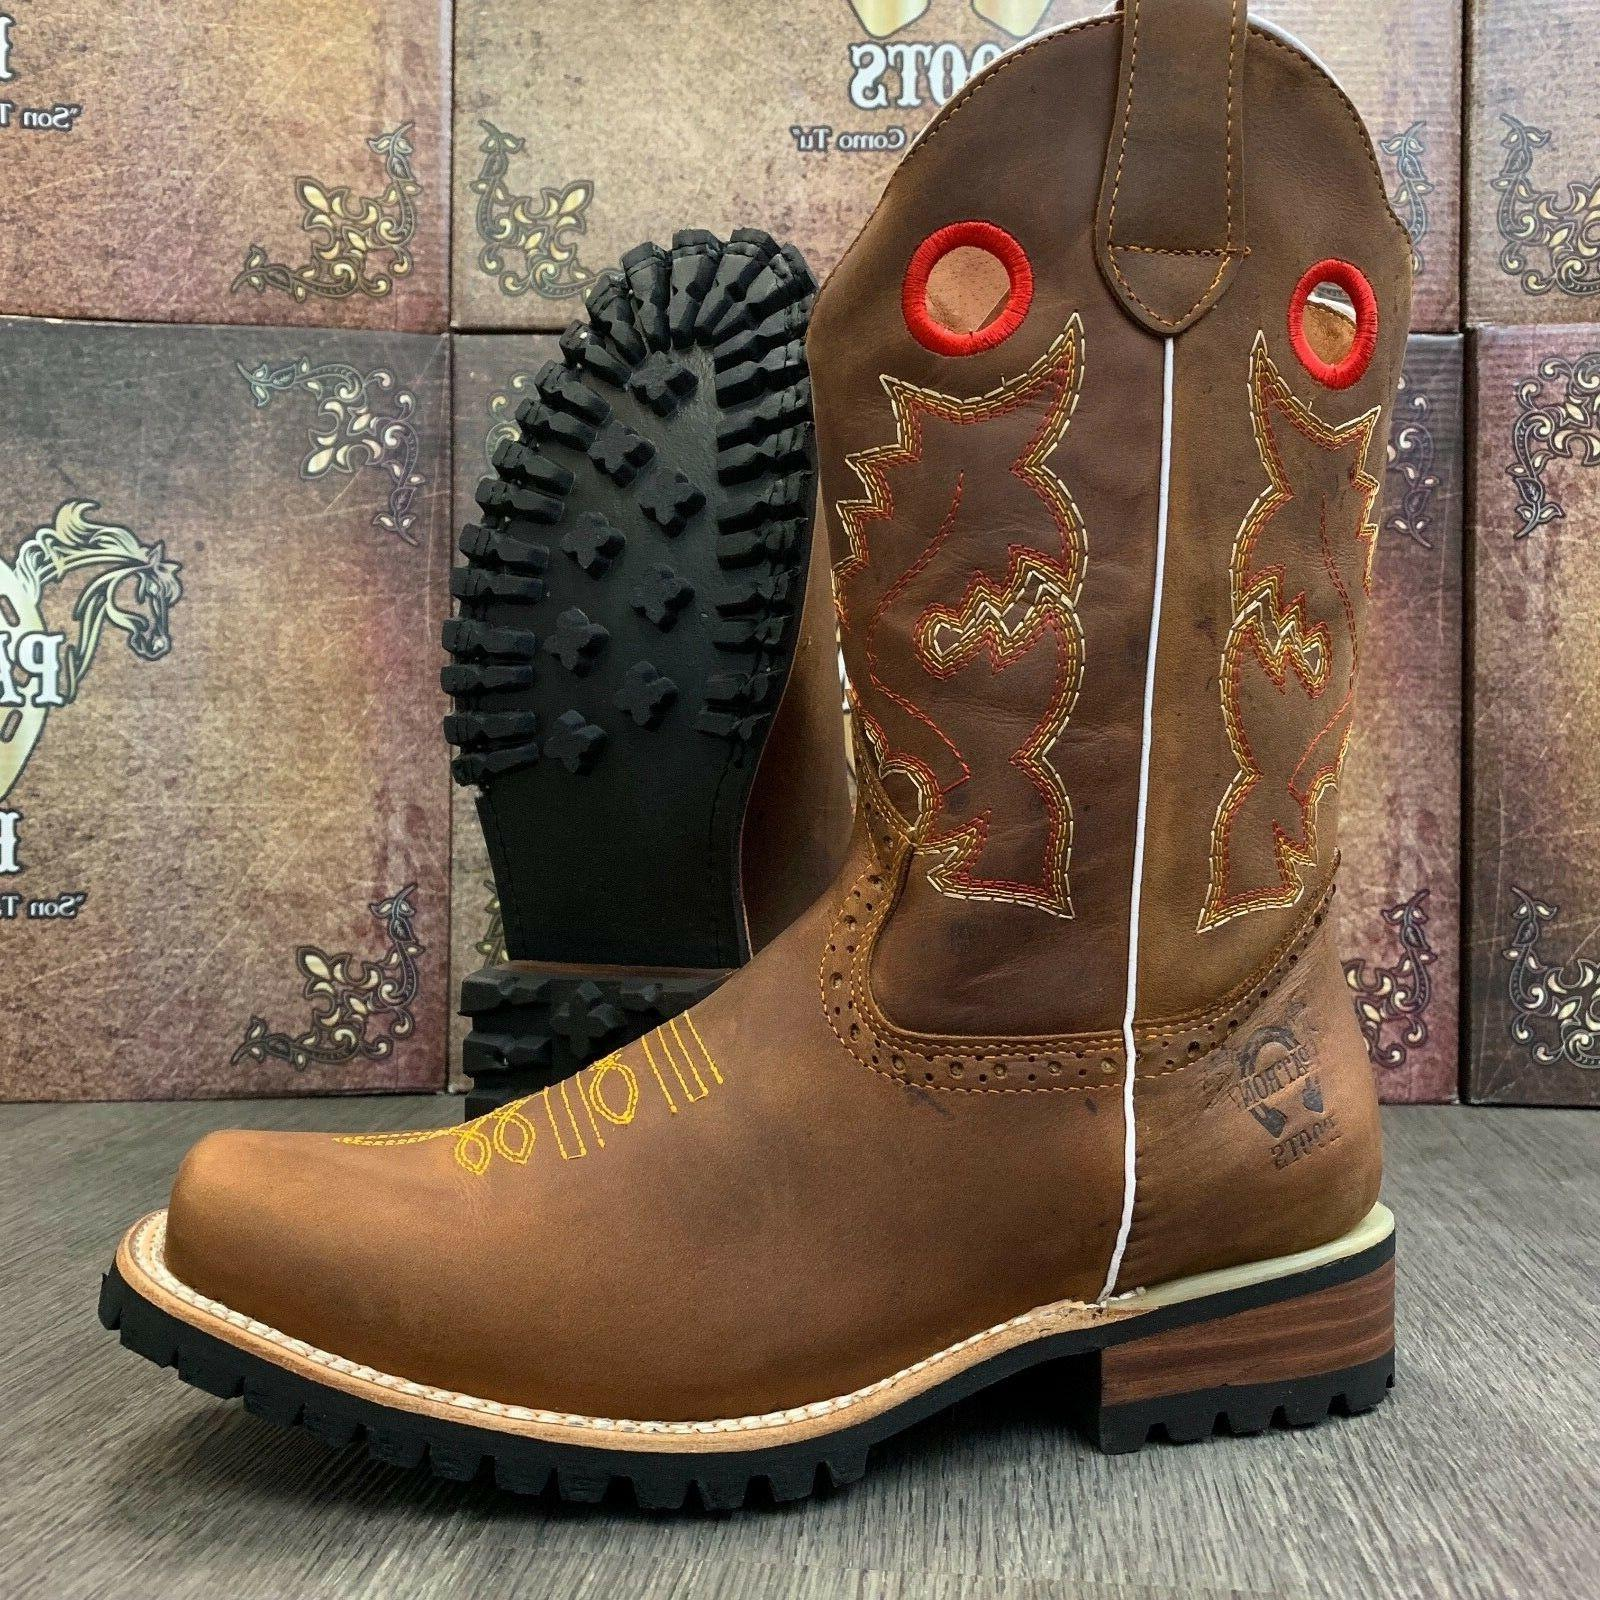 MEN'S BOOTS COWBOY SQUARE LEATHER TRACTOR SOLE